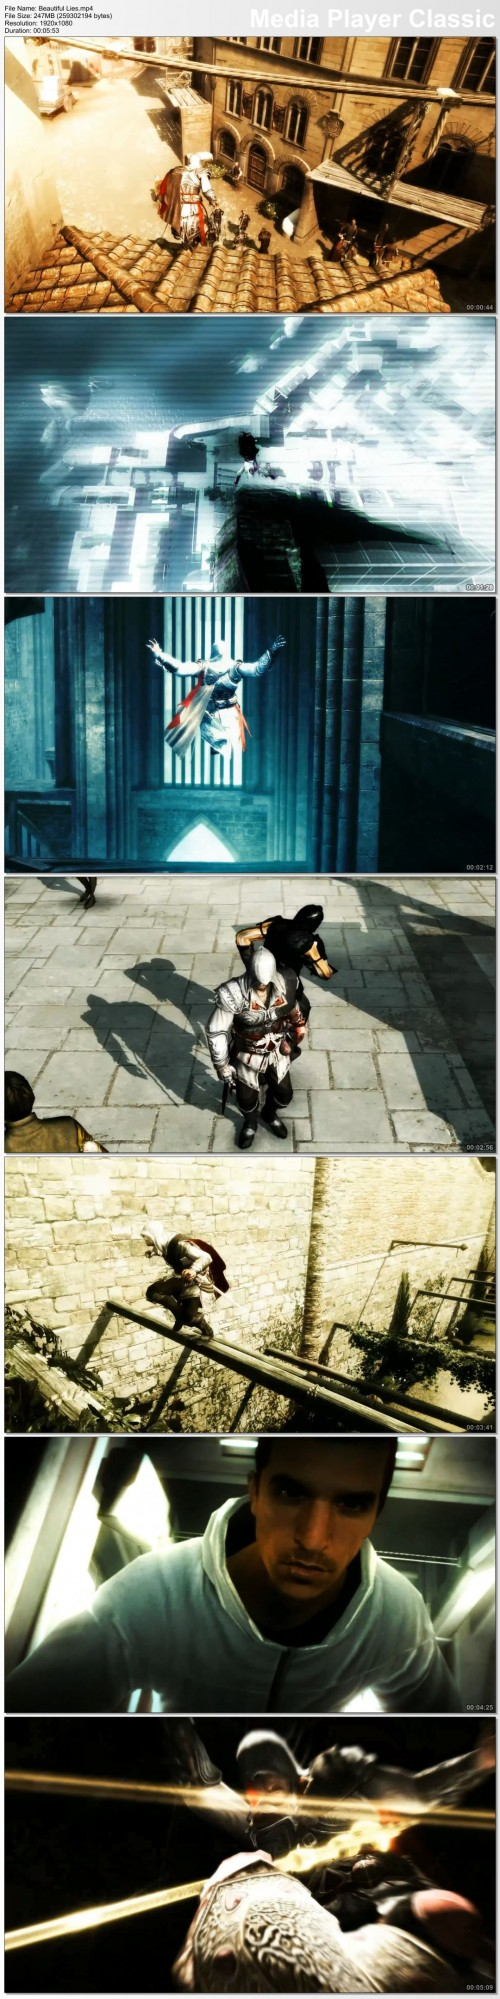 Assassin's Creed: Beautiful Lies